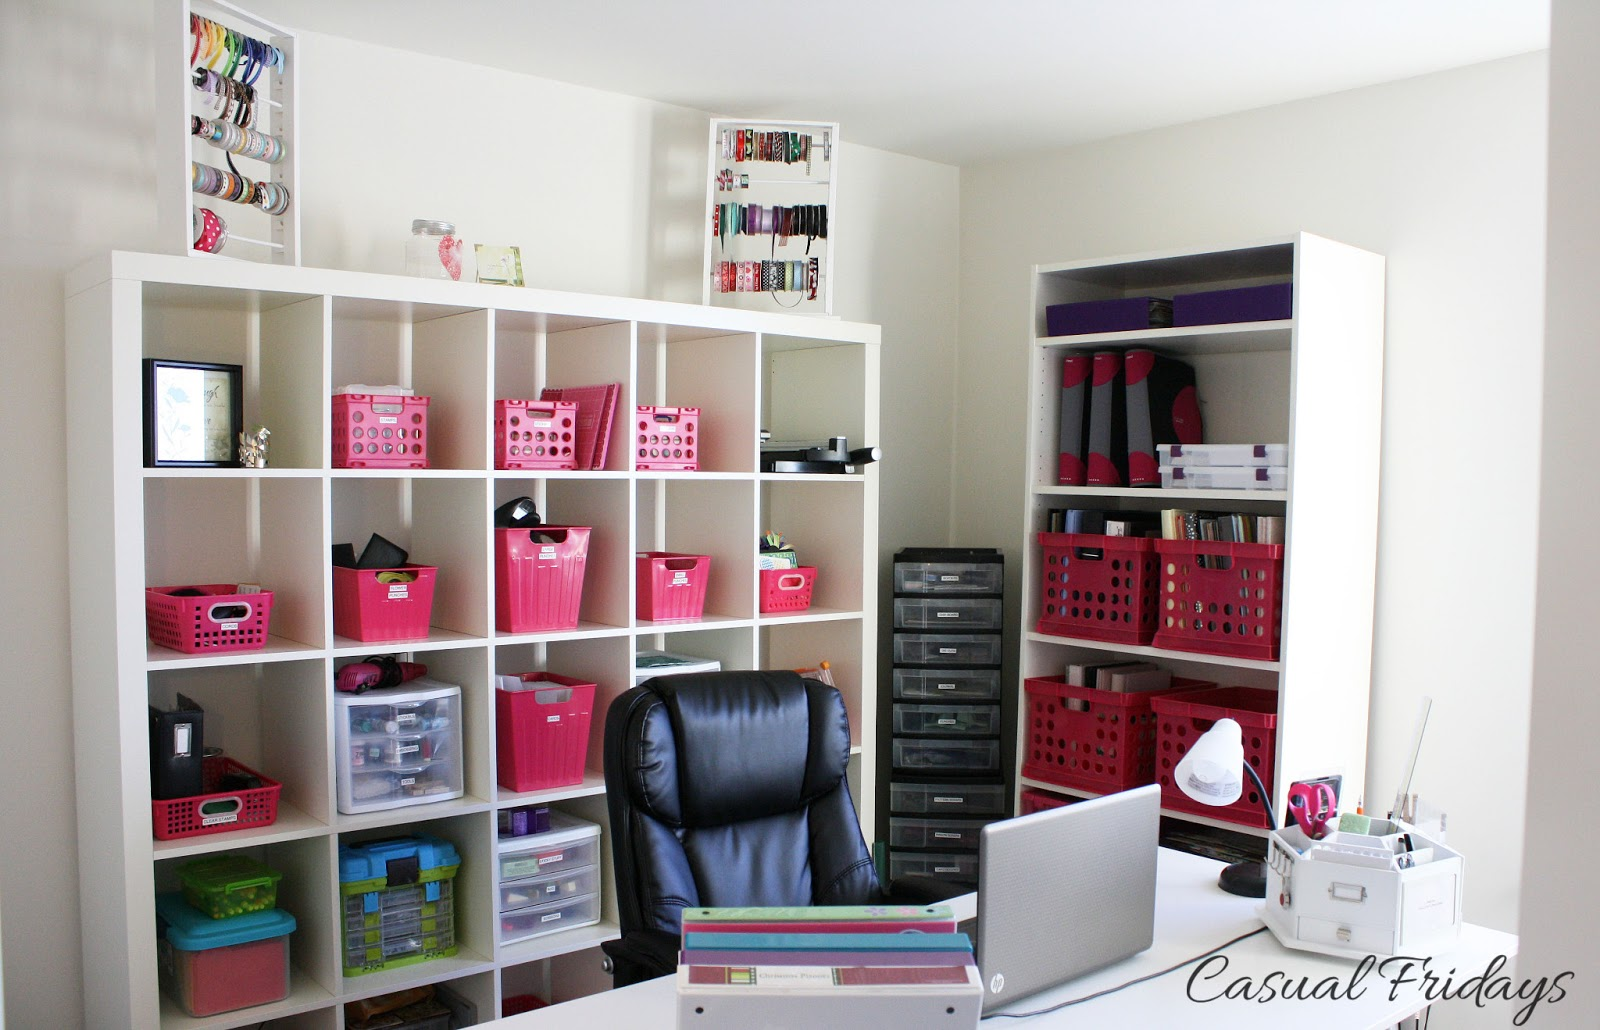 Laundry Room/Mud Room Organization Tricks; Organization Hacks for the Dorm Room; Organization Hacks for the Living Room. The information and resources in this section will have you on your way to an organized, spacious living room (no matter how small) that suits the many purposes for the space.